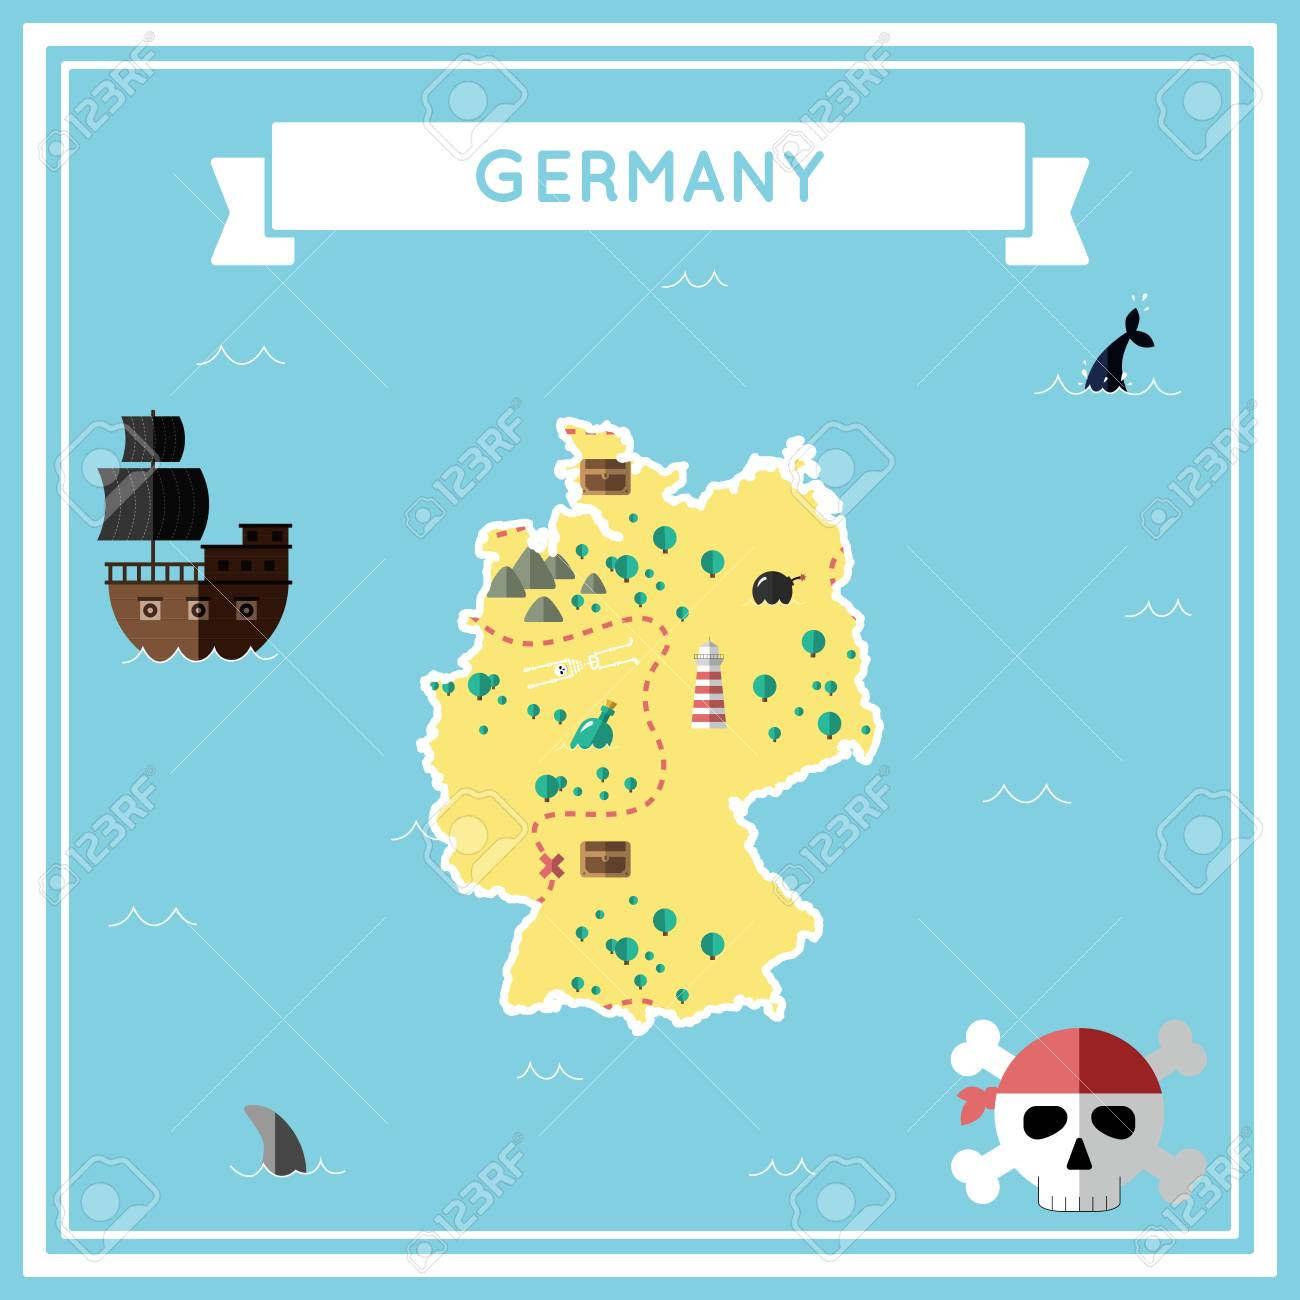 Cartoon Map Of Germany.Flat Treasure Map Of Germany Colorful Cartoon With Icons Of